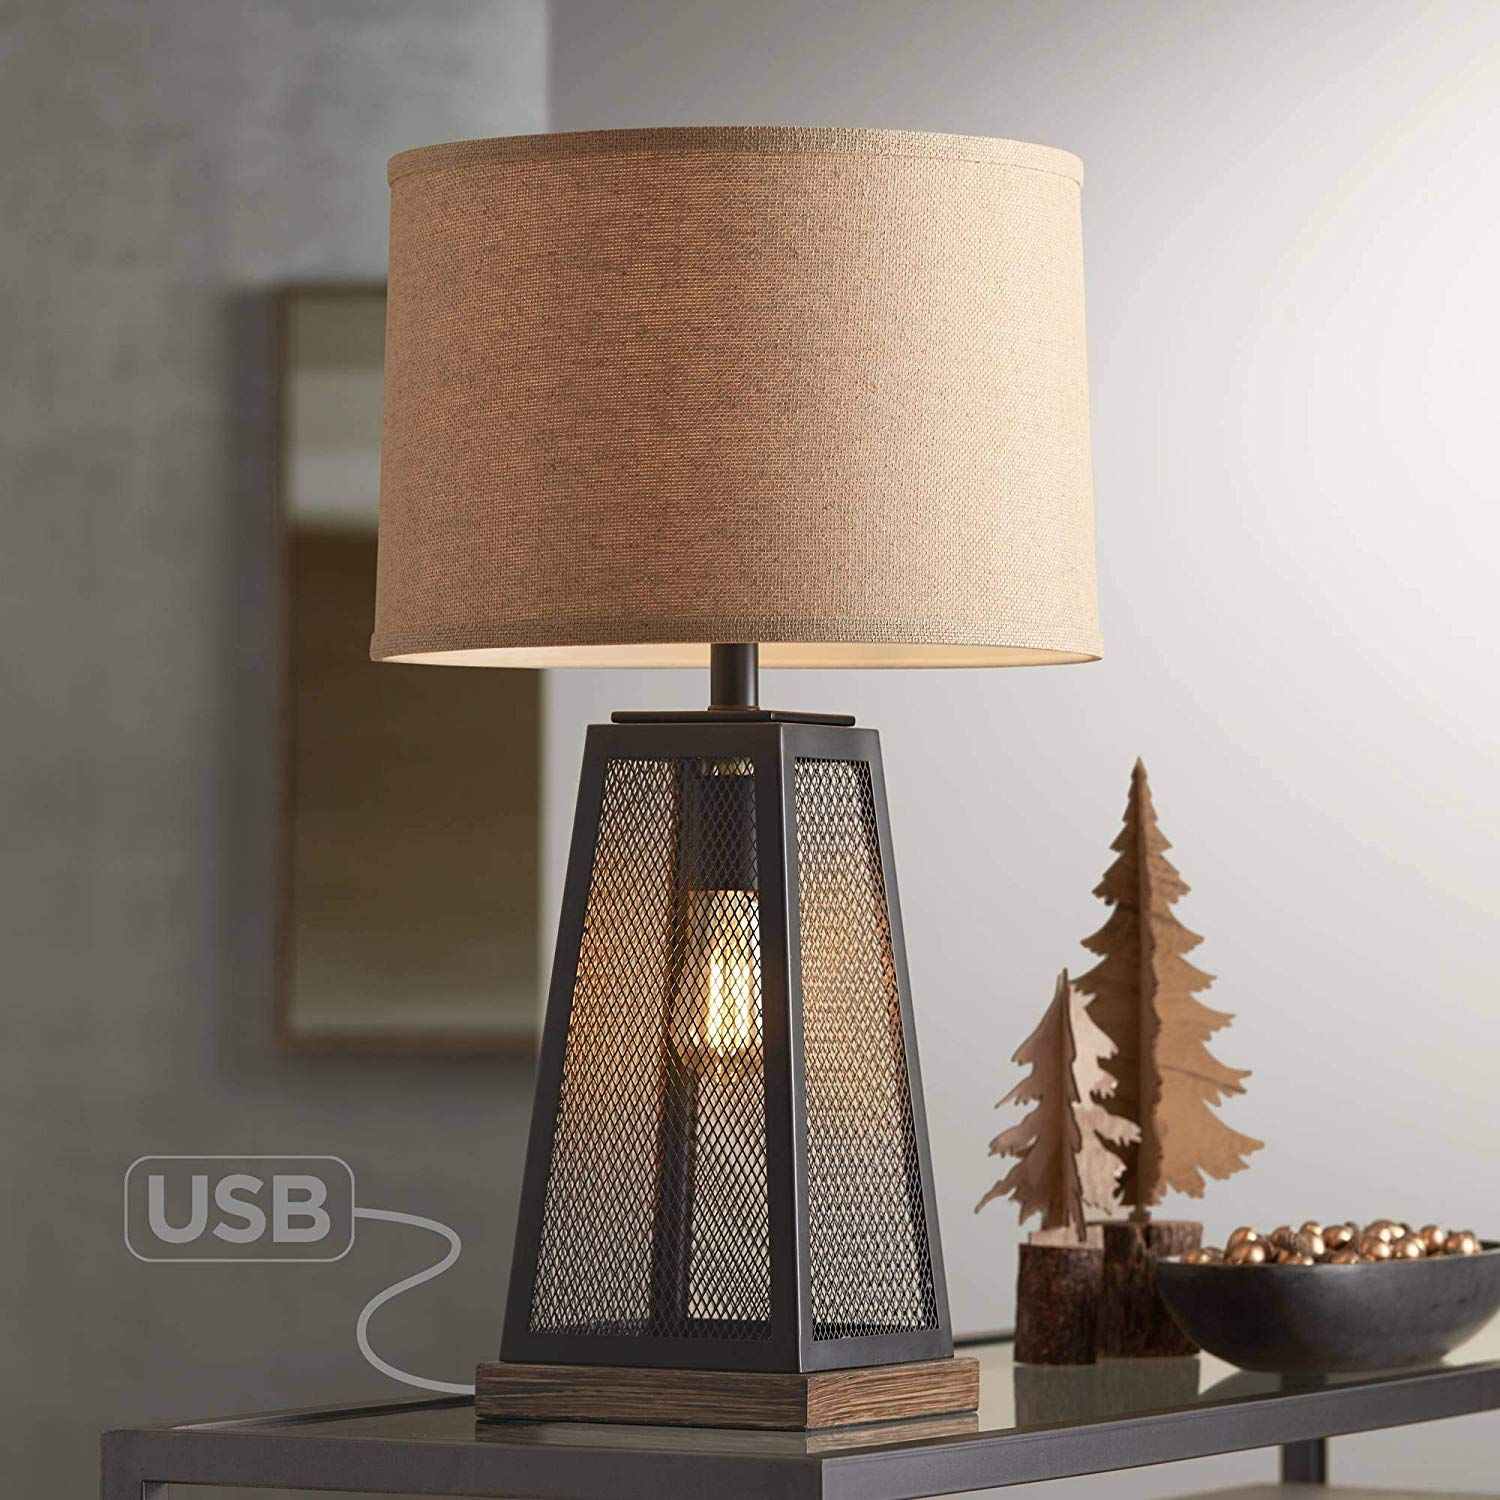 Table Lamp Table Lamps Living Room Bedside Night Stands Lamp